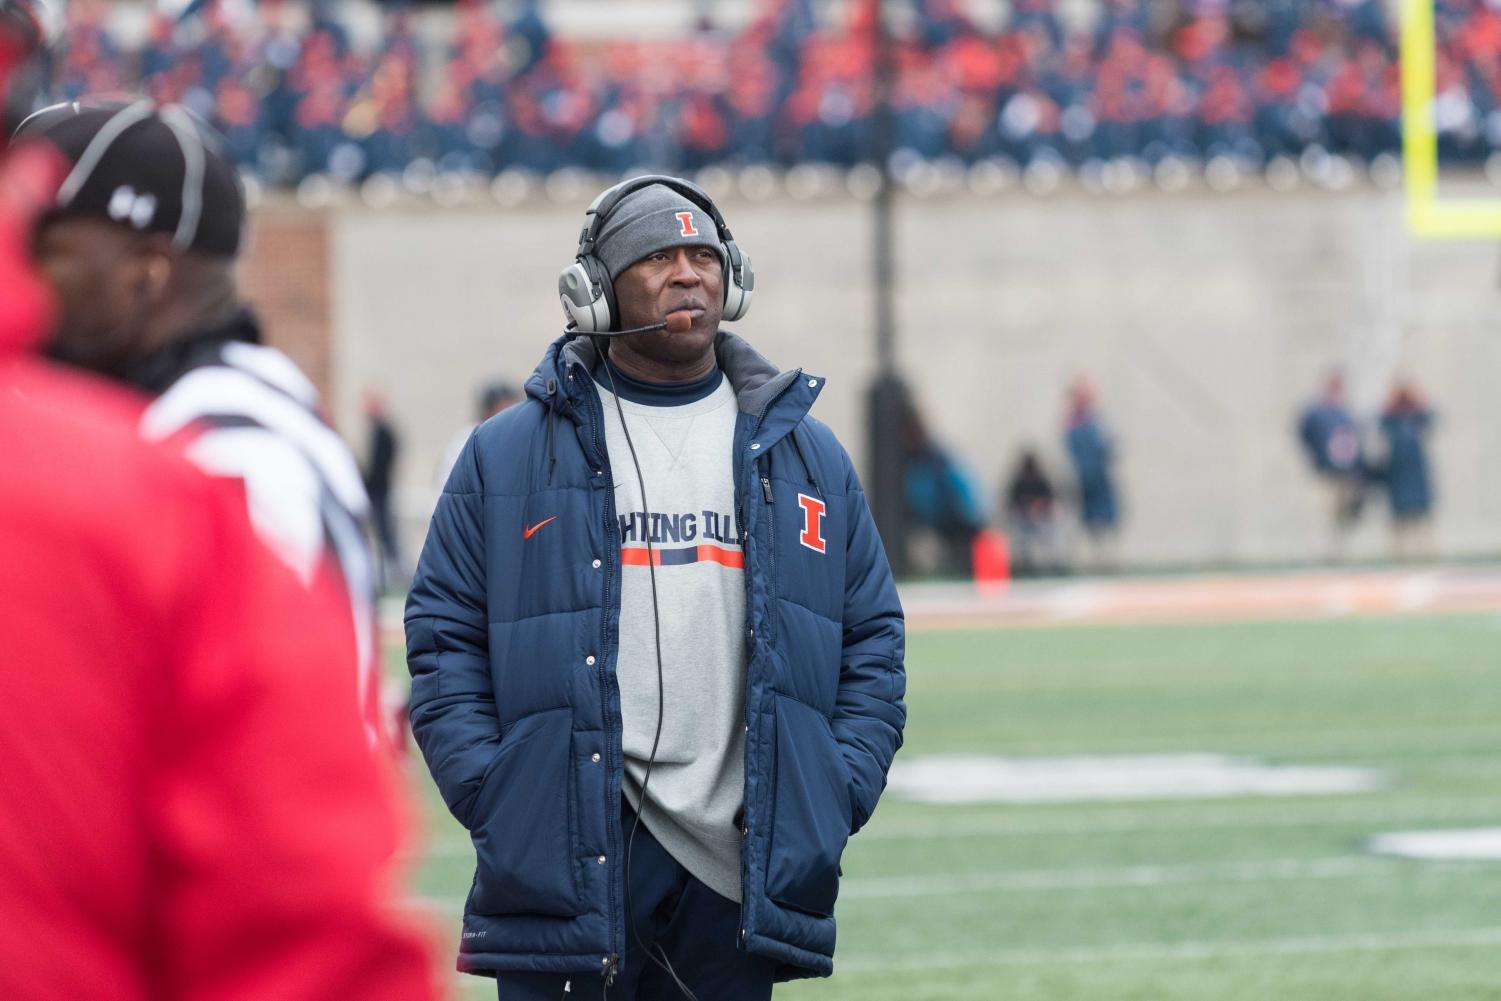 Illinois head coach Lovie Smith looks out over the field during the game against Wisconsin on Oct. 28. The Illini lost 24-10.